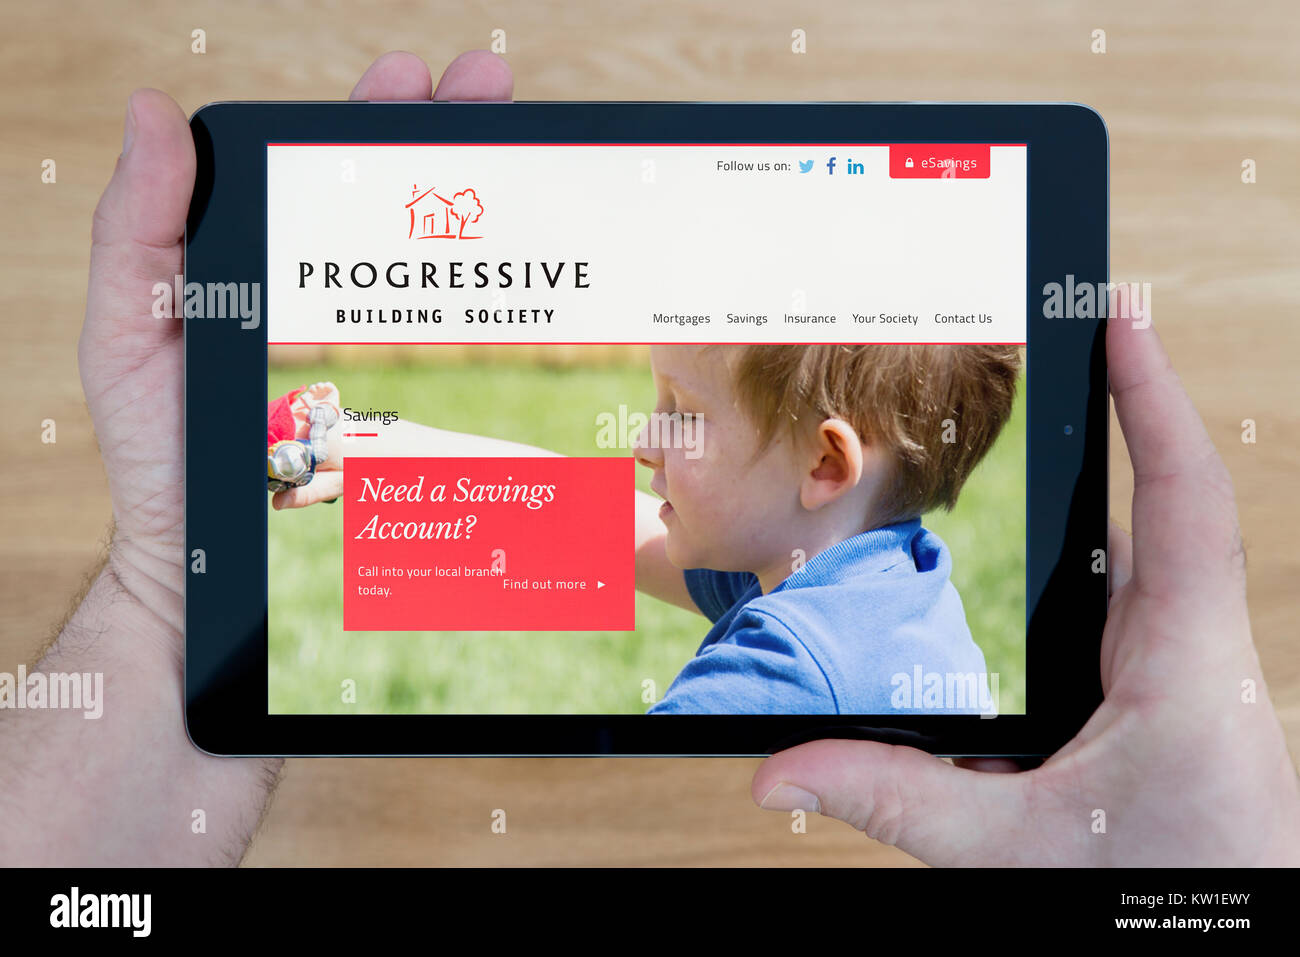 A man looks at the Progressive Building Society website on his iPad tablet device, shot against a wooden table top - Stock Image